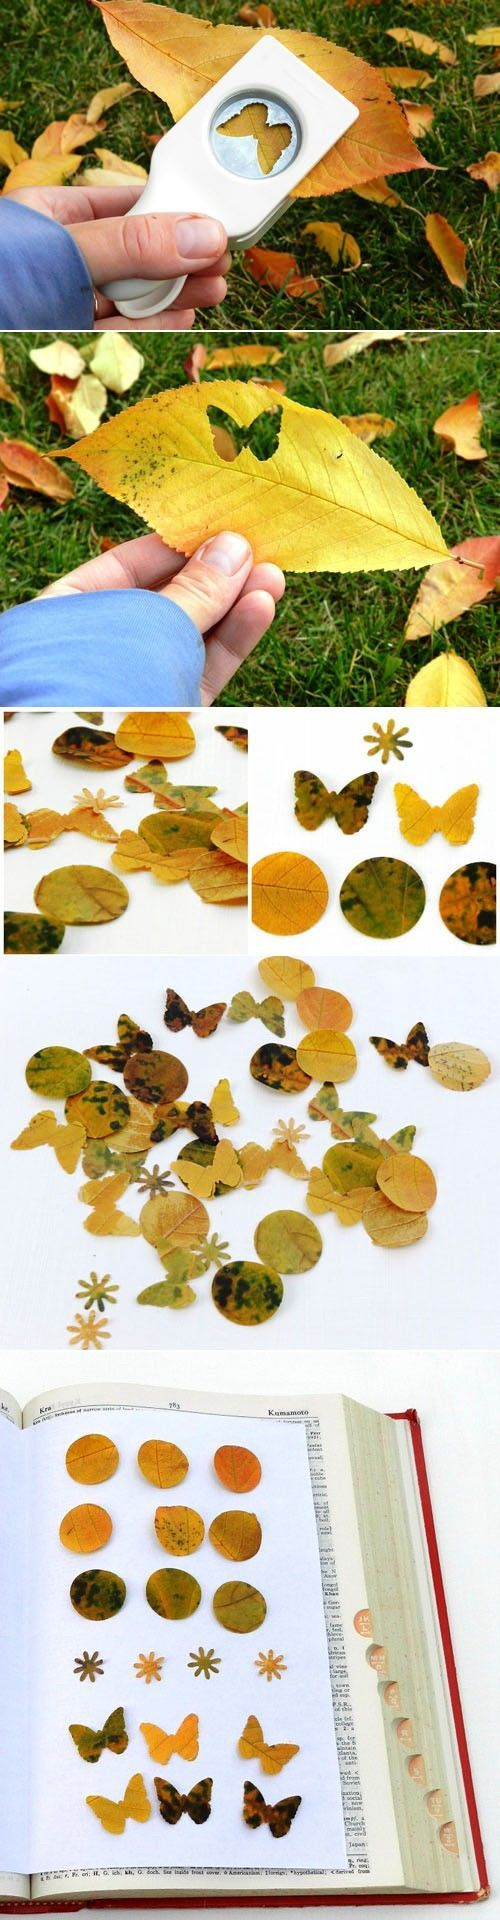 Collect the mark of autumn – share creative ideas for making plant leaves